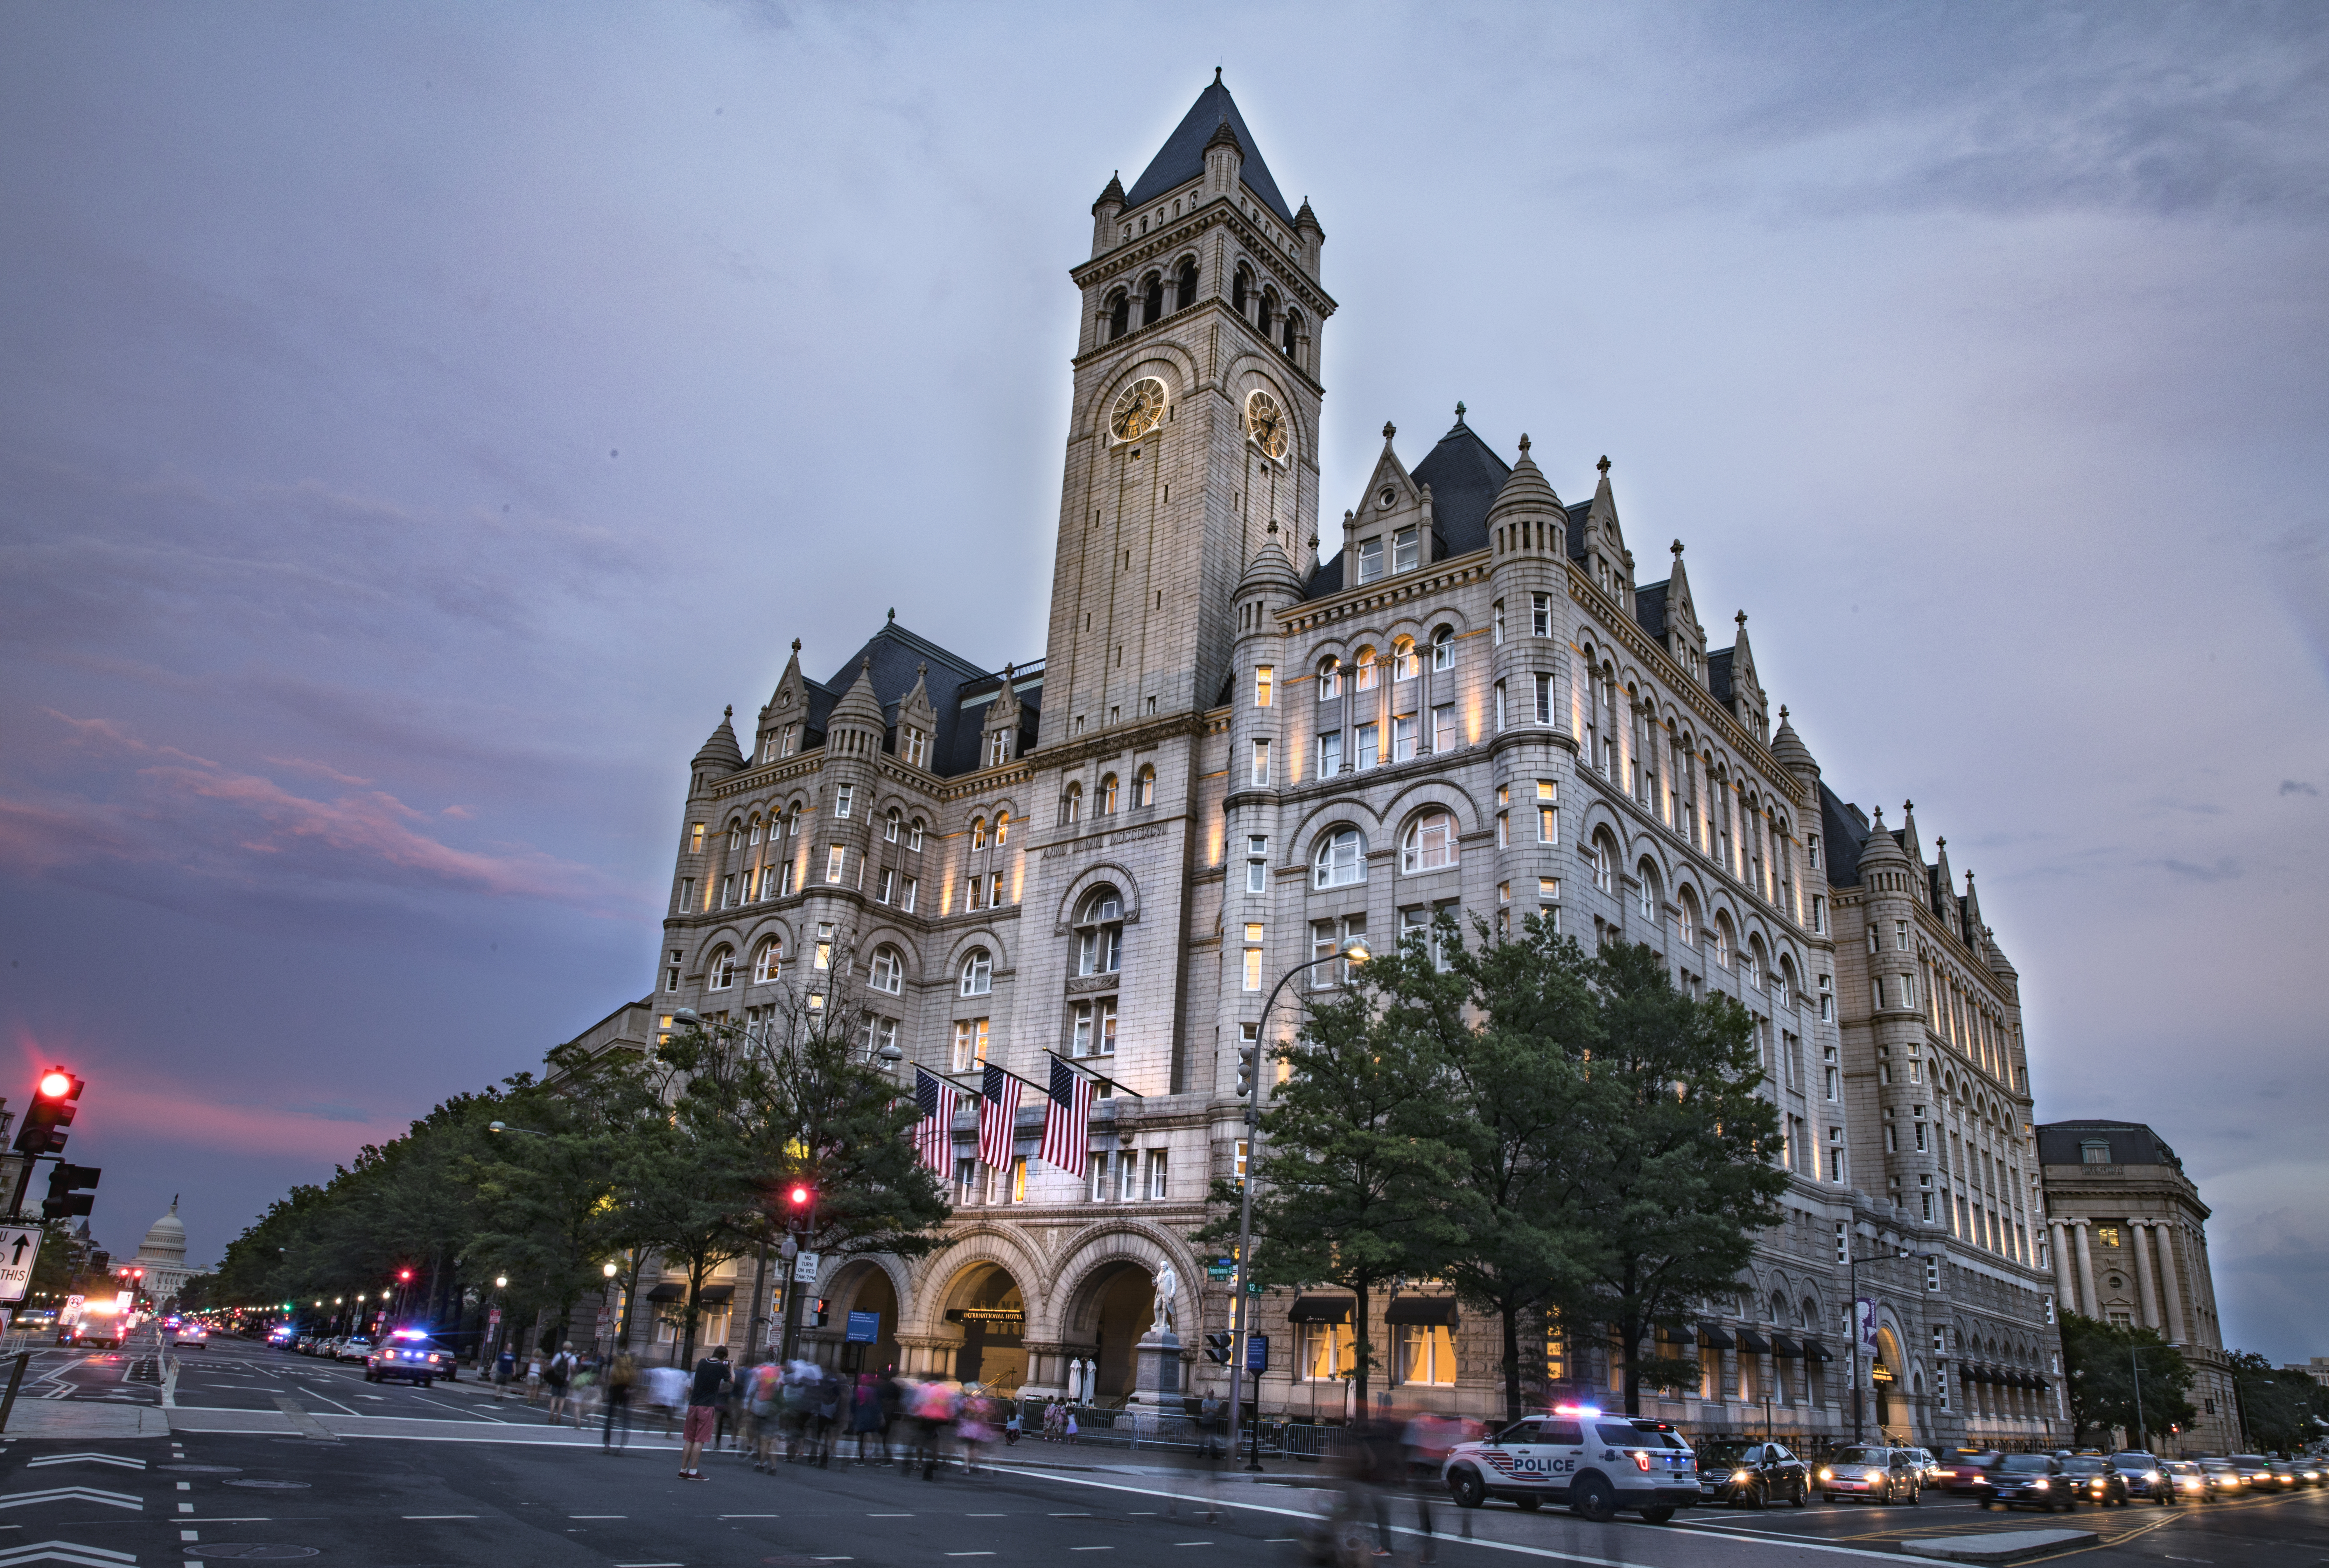 Trump S D C Hotel A Clubhouse For His Fans May Also Be 5 Star Conflict Of Interest